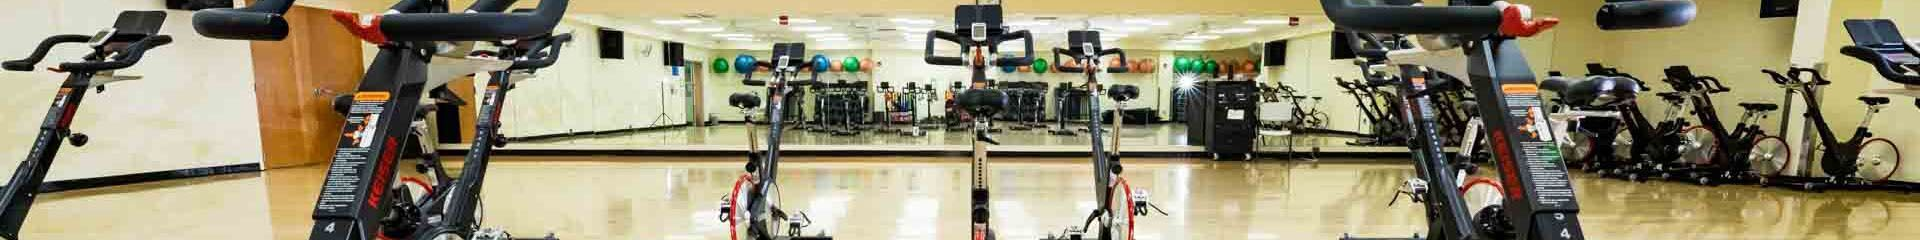 Panoramic view of cycling machine in the gym